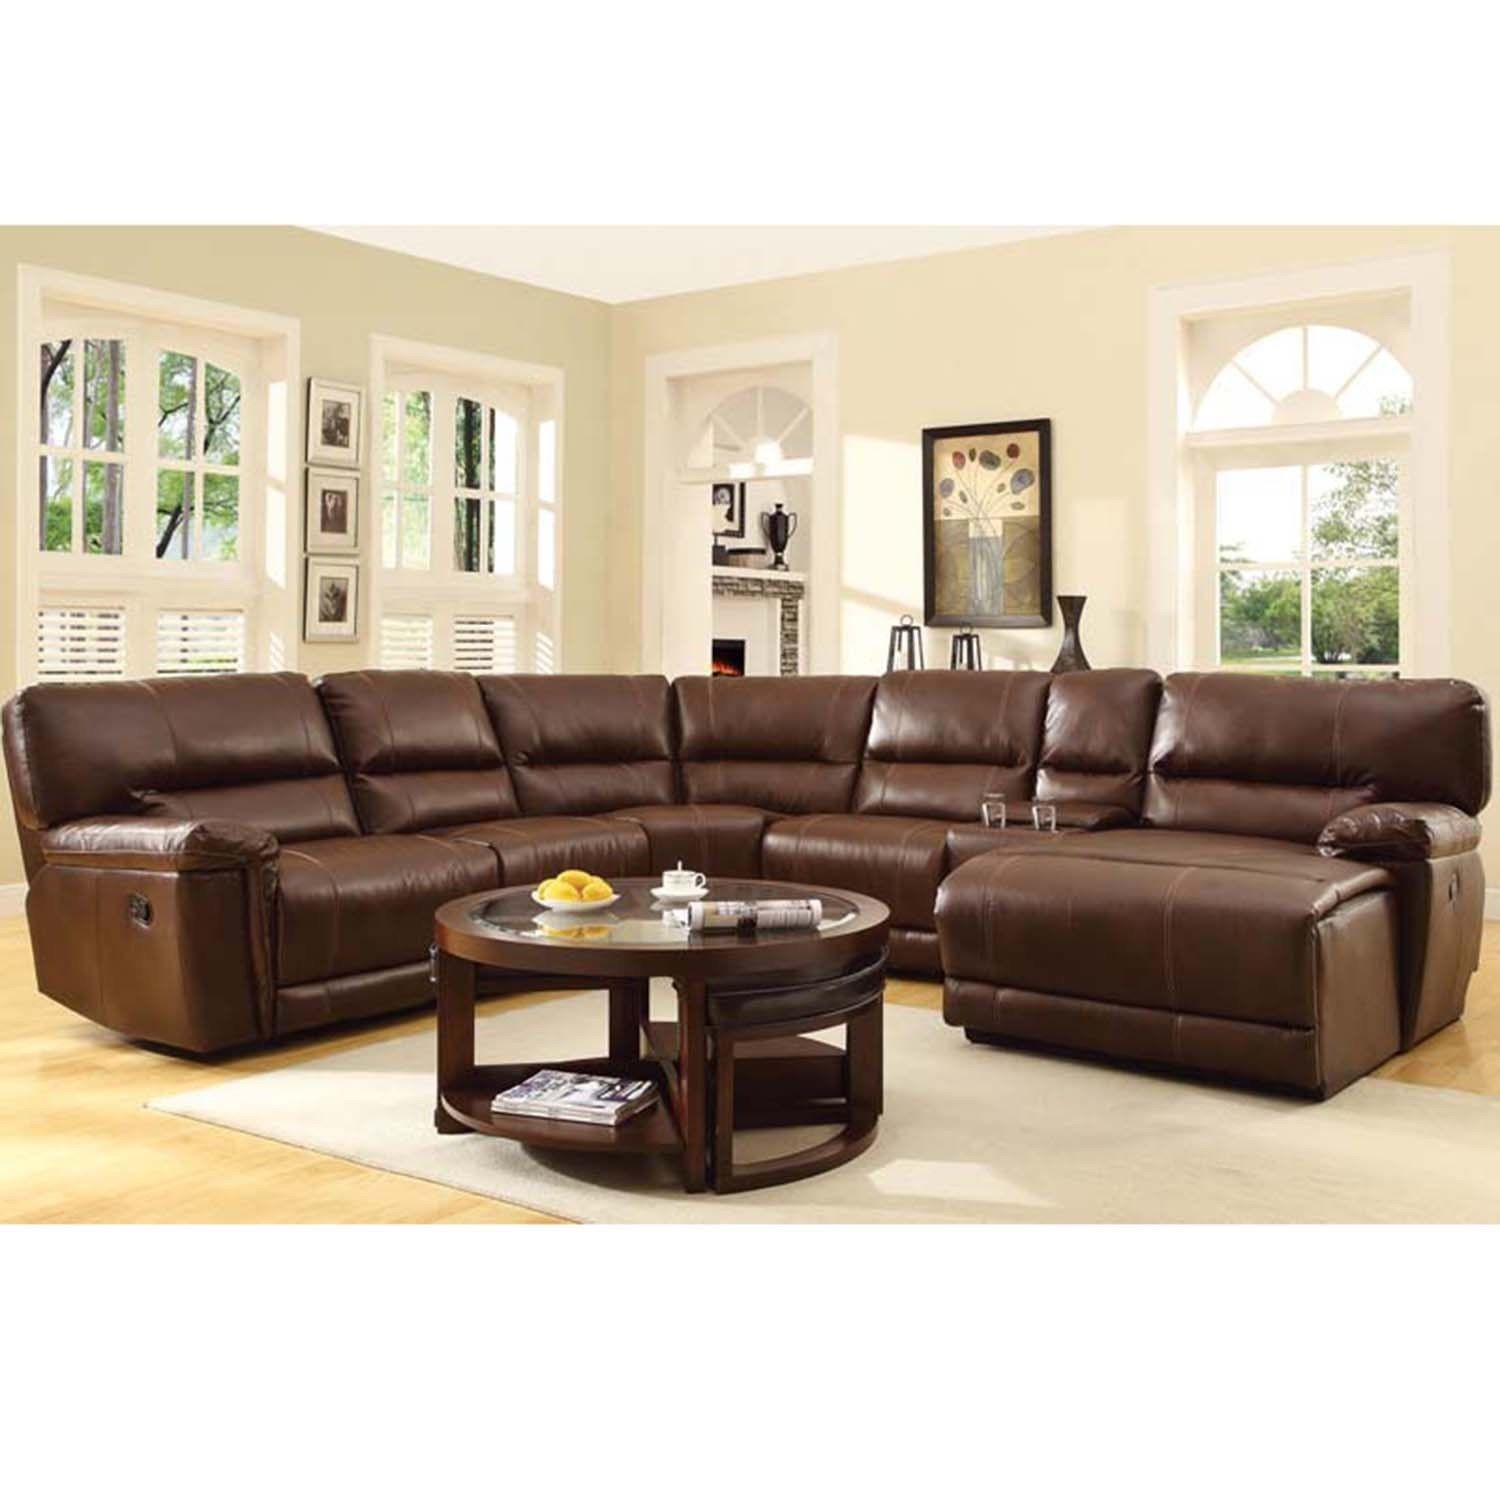 Hardy Bonded Leather Reclining Sectional With Chaise Overstock